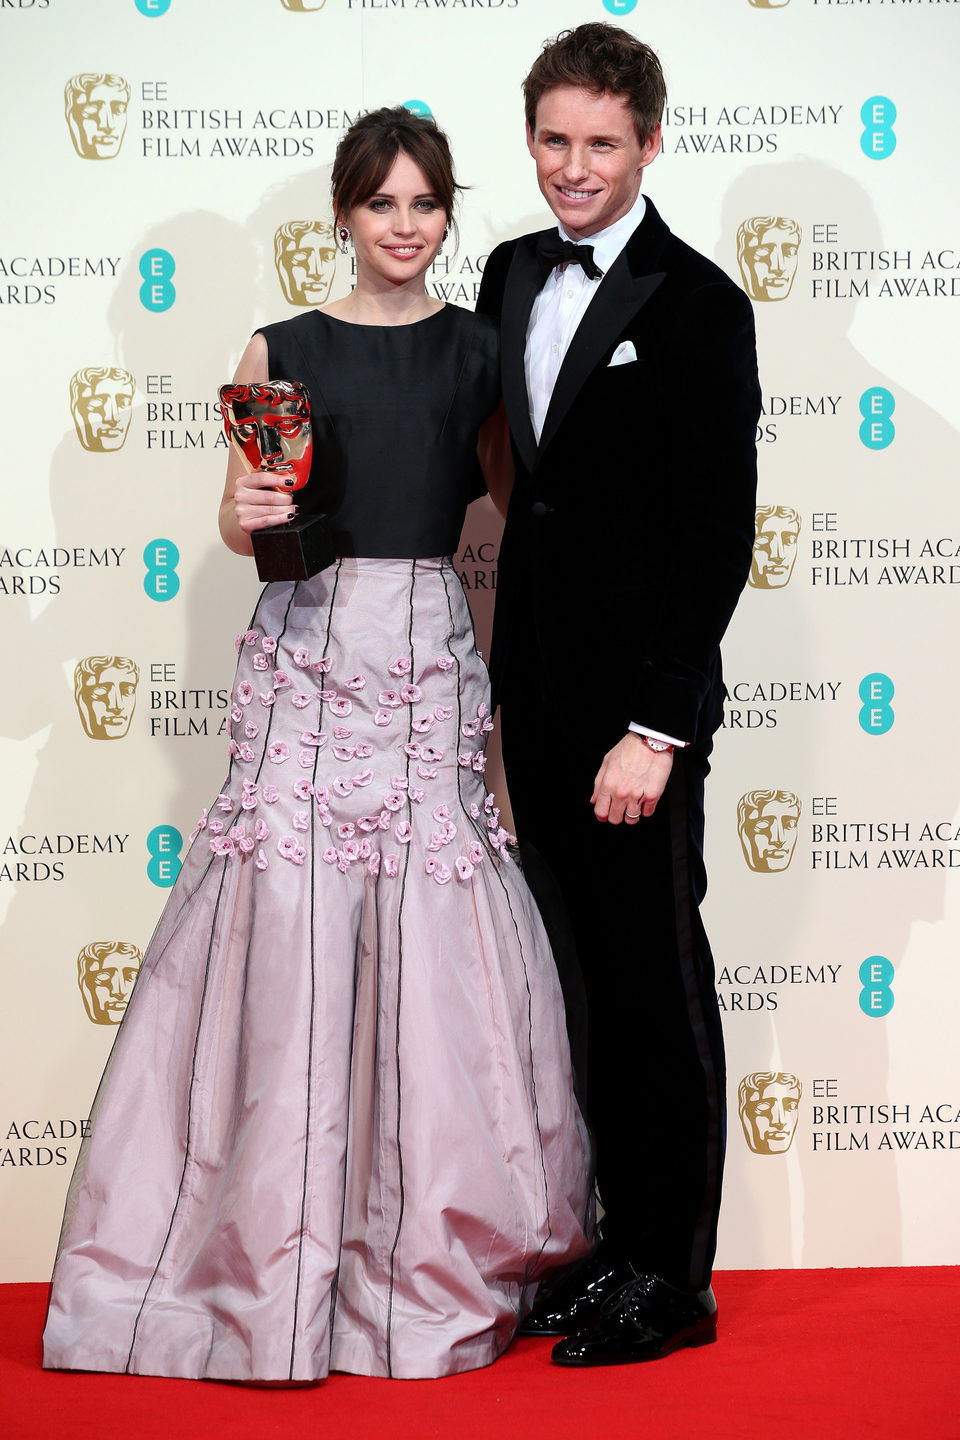 Felicity Jones and Eddie Redmayne poss with the Outstanding British Film Award for the 'Theory of Everything' at the BAFTA 2015